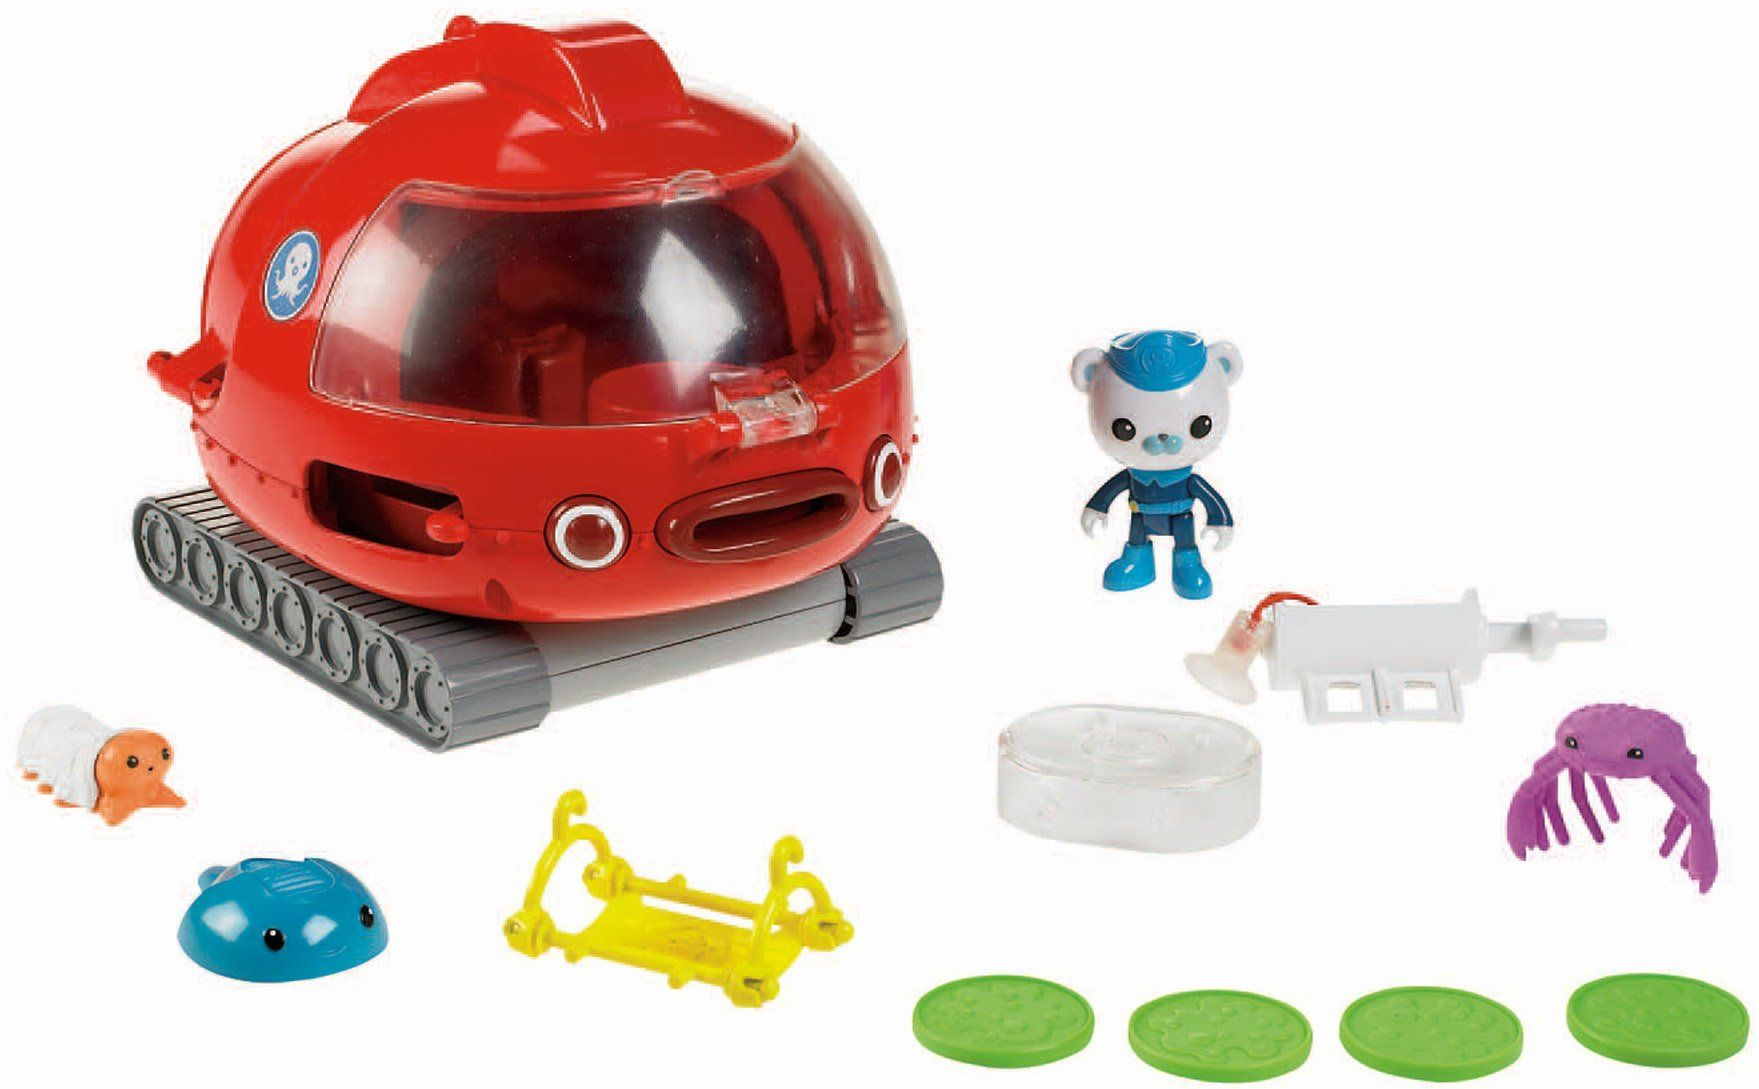 Fisher-Price Octonauts Launch and Rescue Gup X Vehicle | Maybeline ...